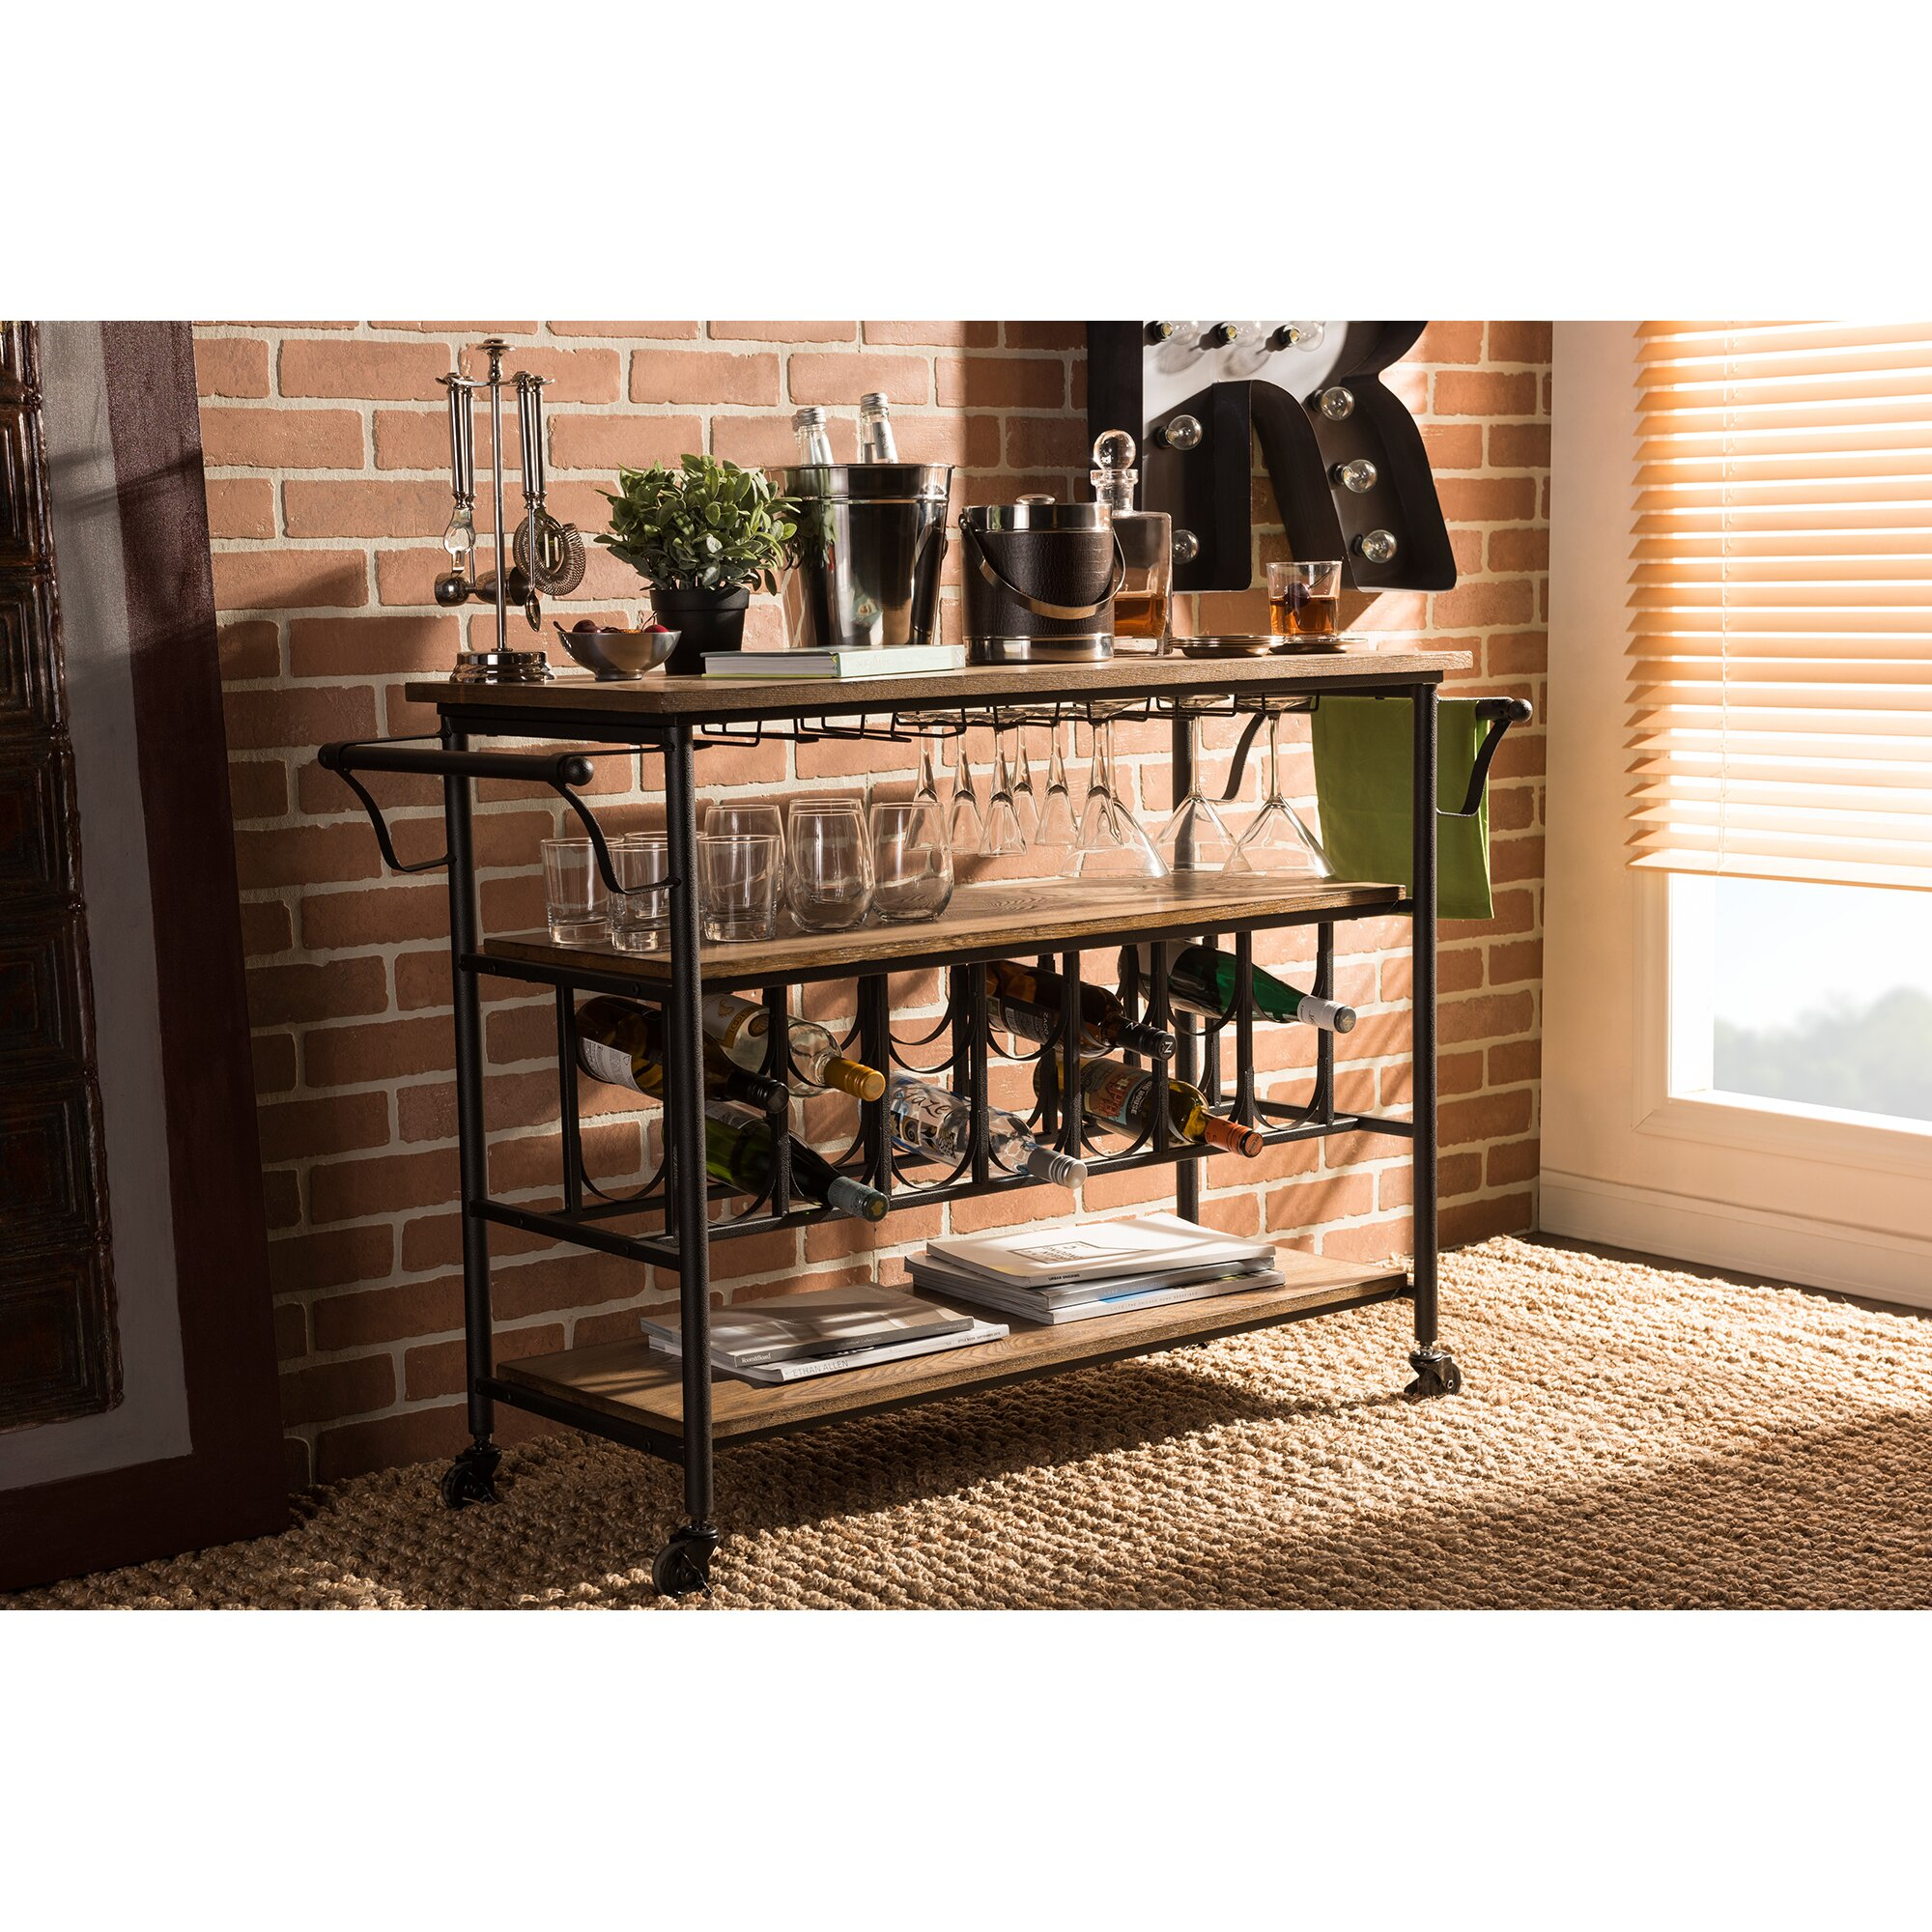 Rustic Industrial Kitchen: Wholesale Interiors Bradford Serving Cart & Reviews